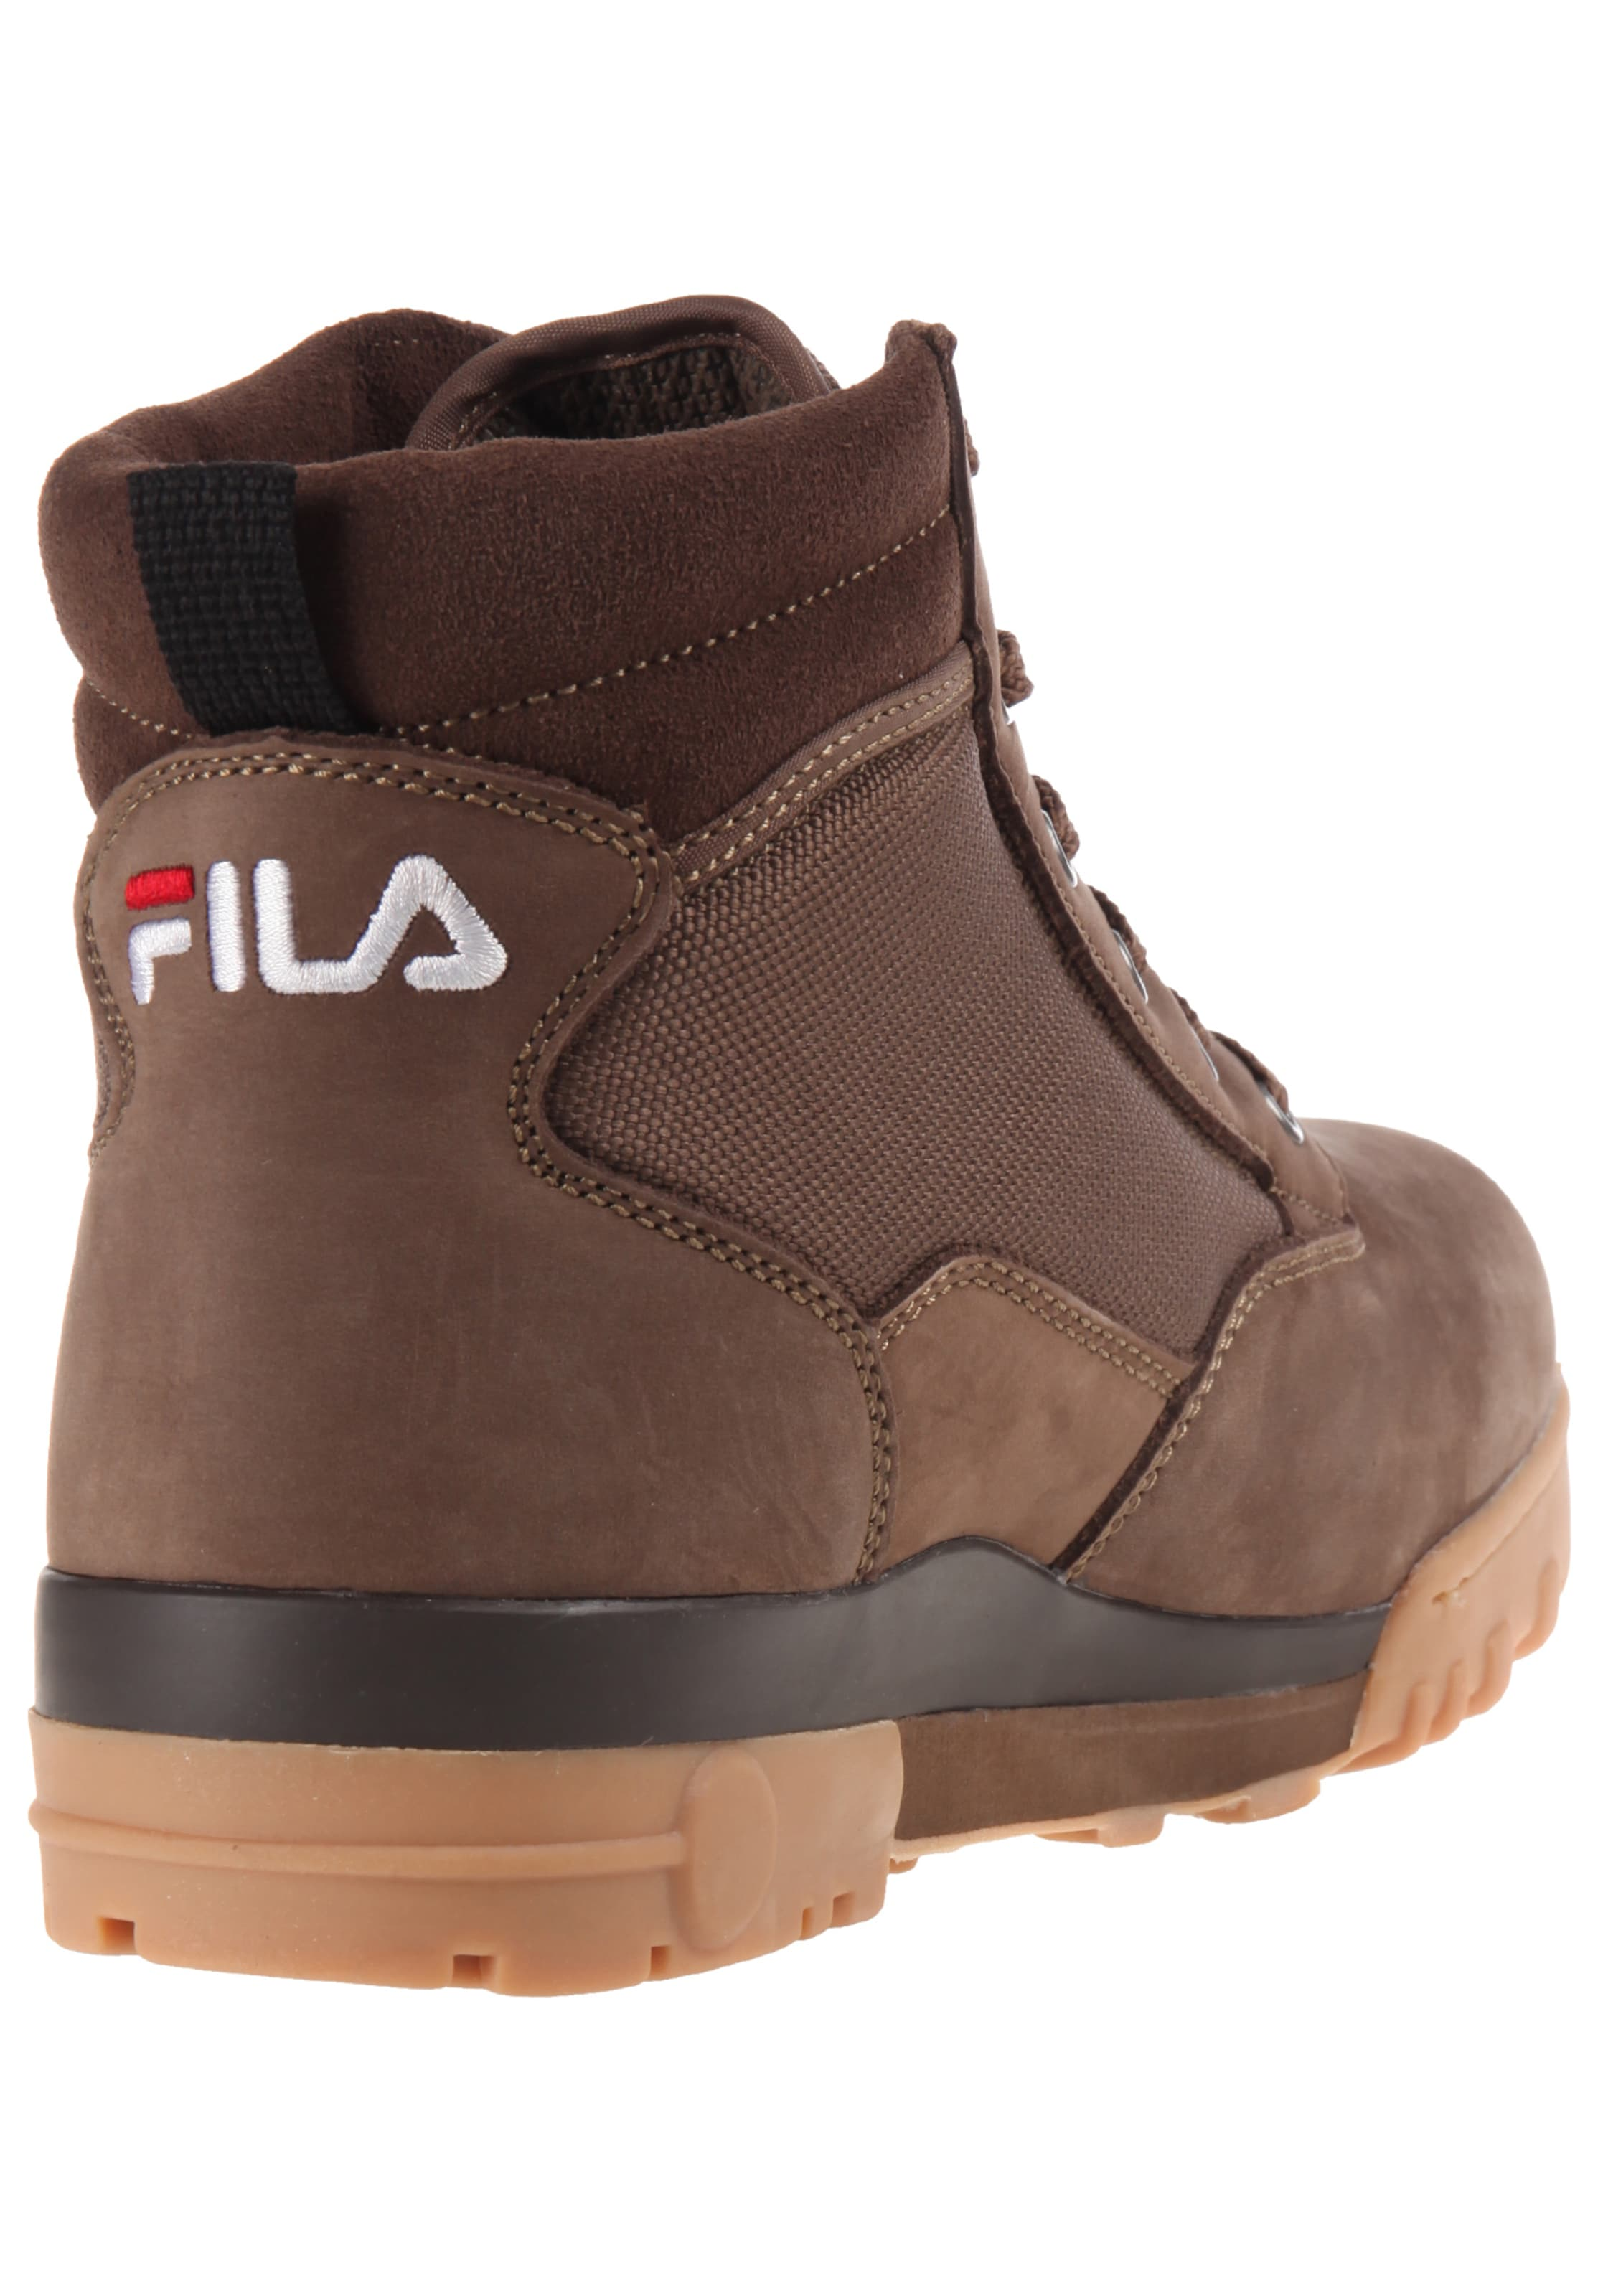 Stiefel Grunge Braun Mid' In Fila 'heritage xBodCe